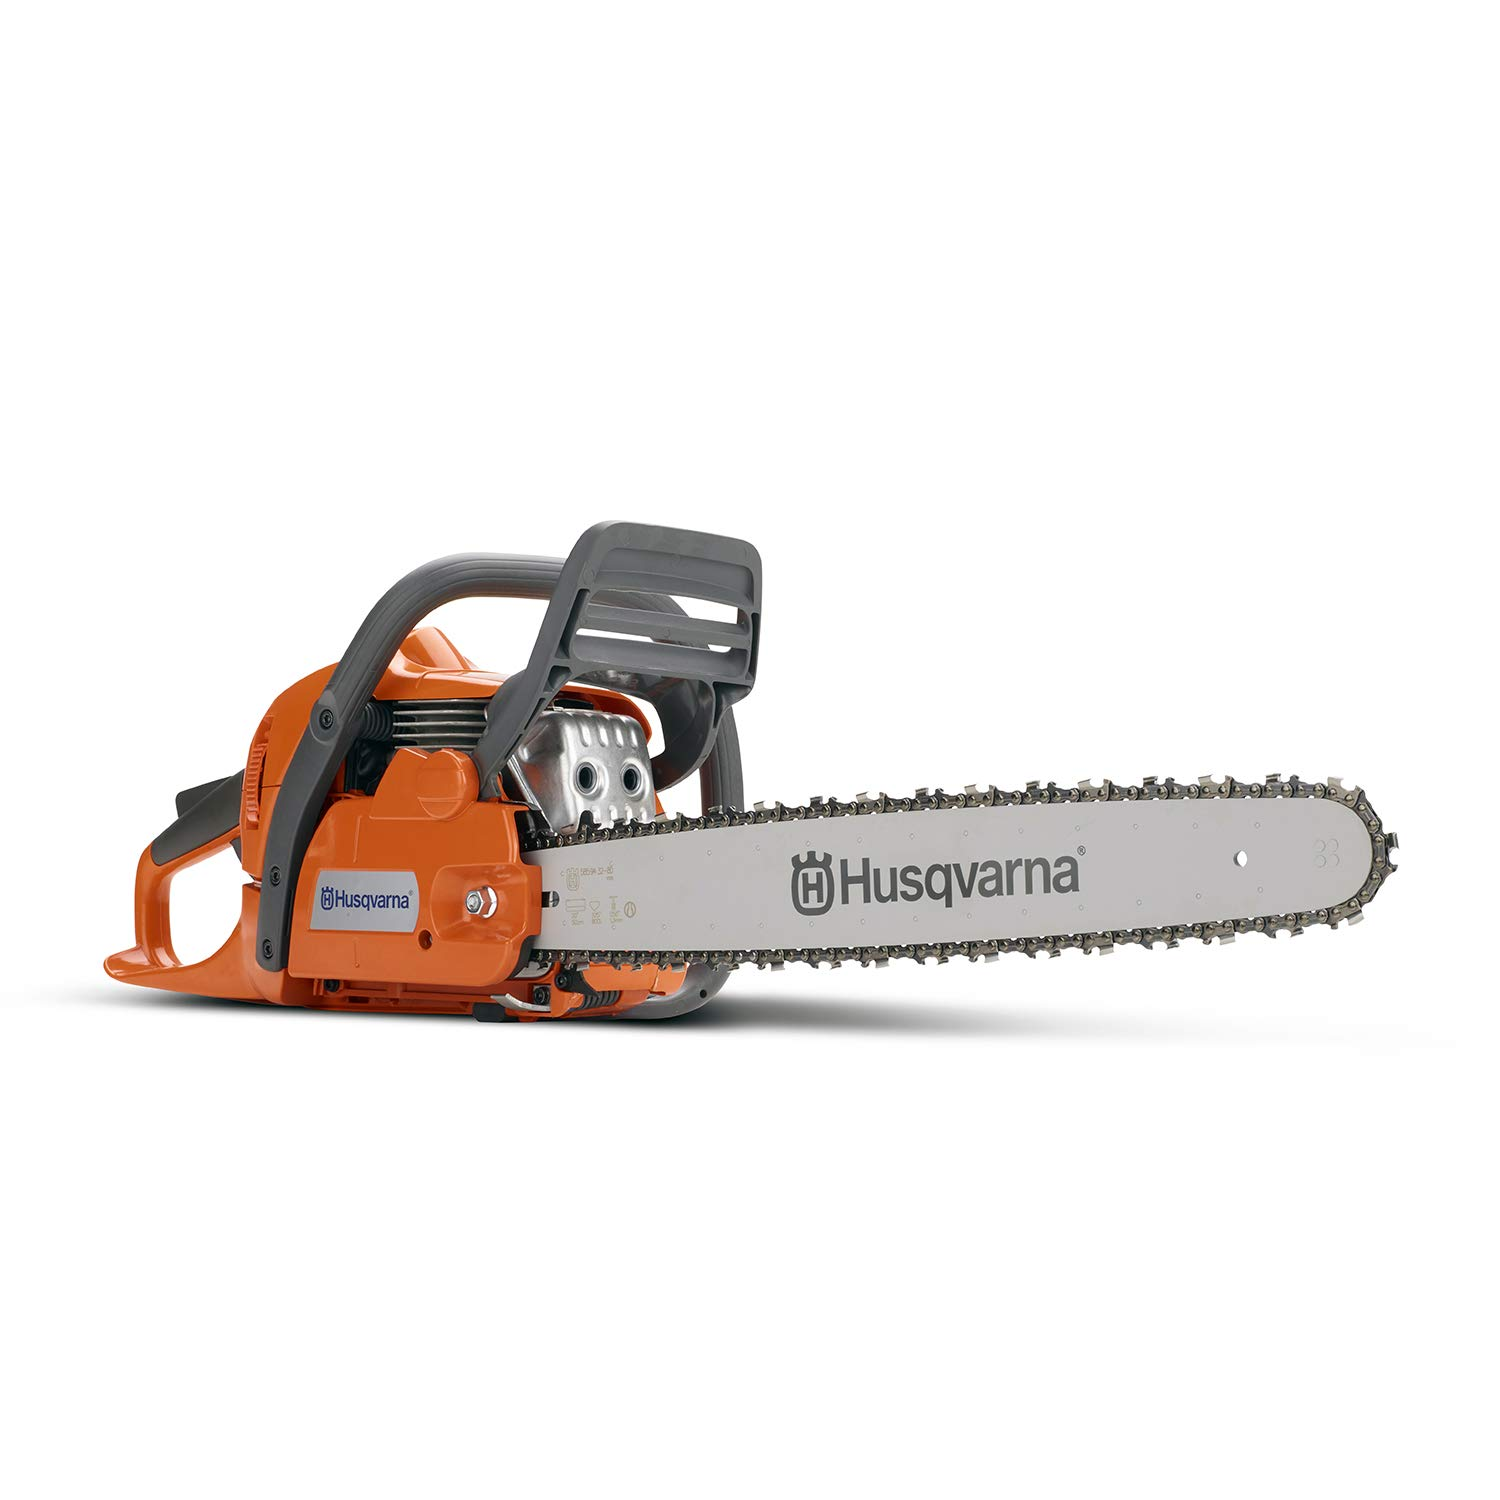 Husqvarna 450E Chainsaws product image 7